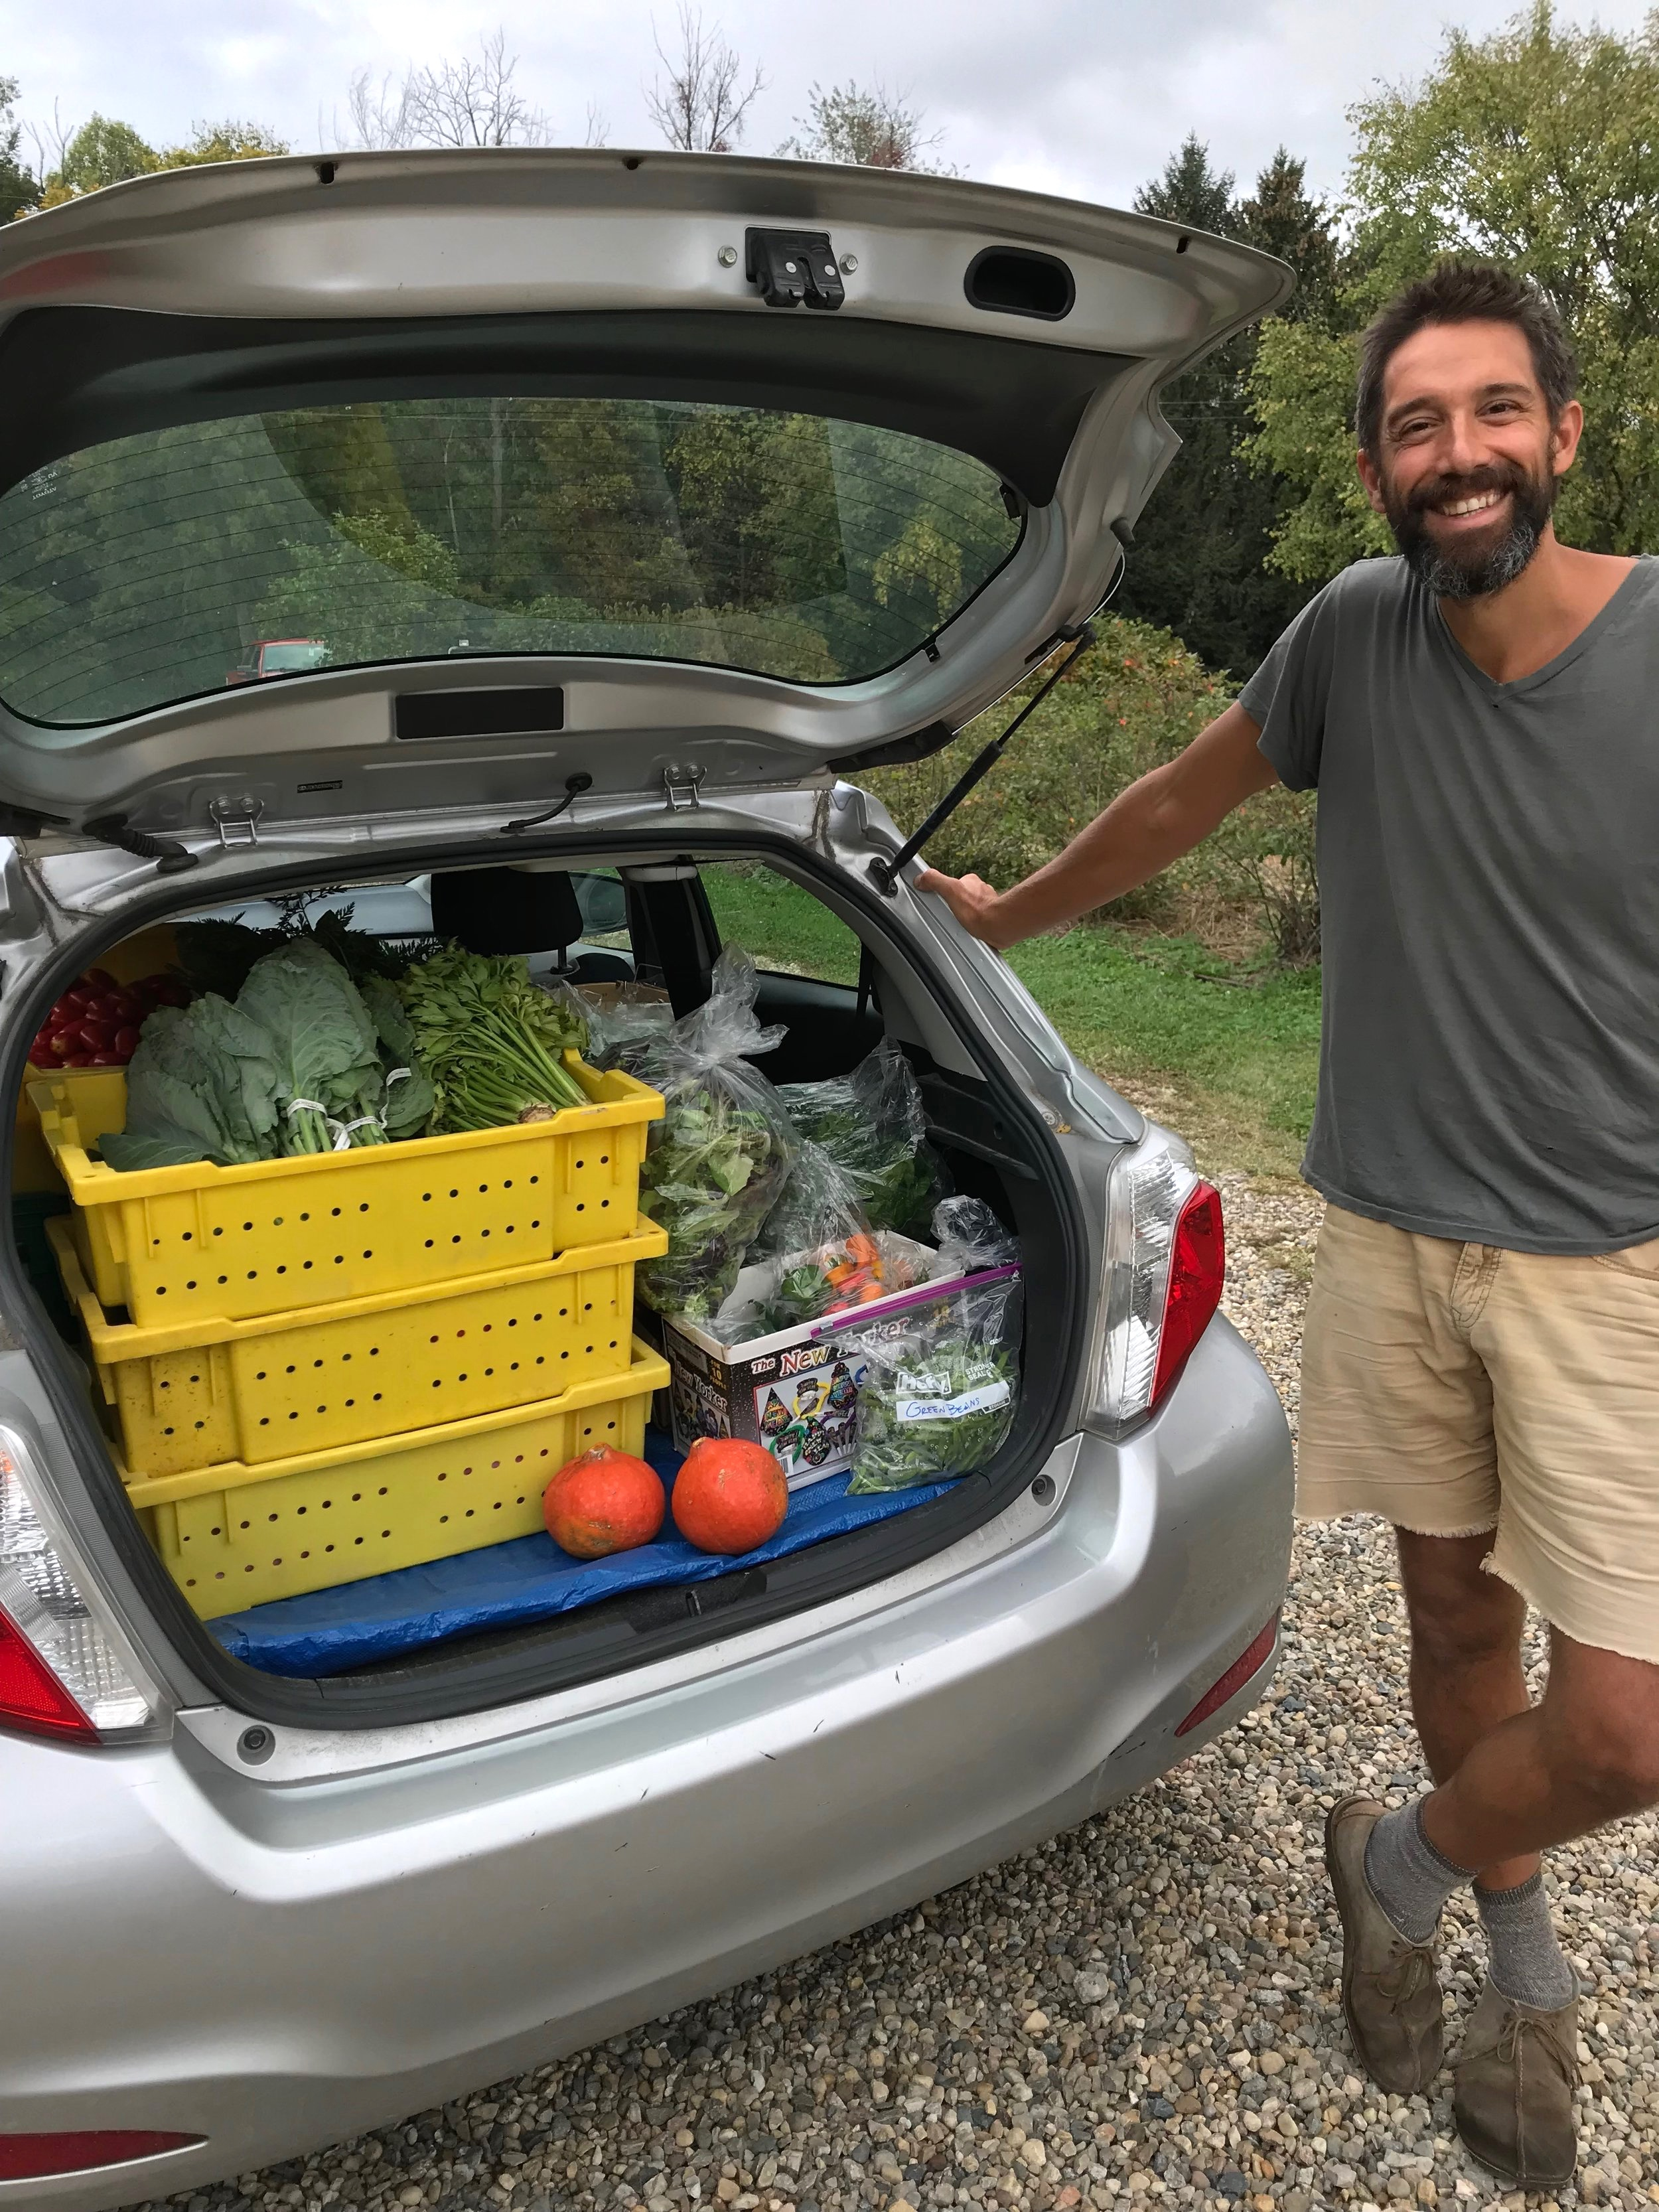 Farmer Billy with a carload of produce donations